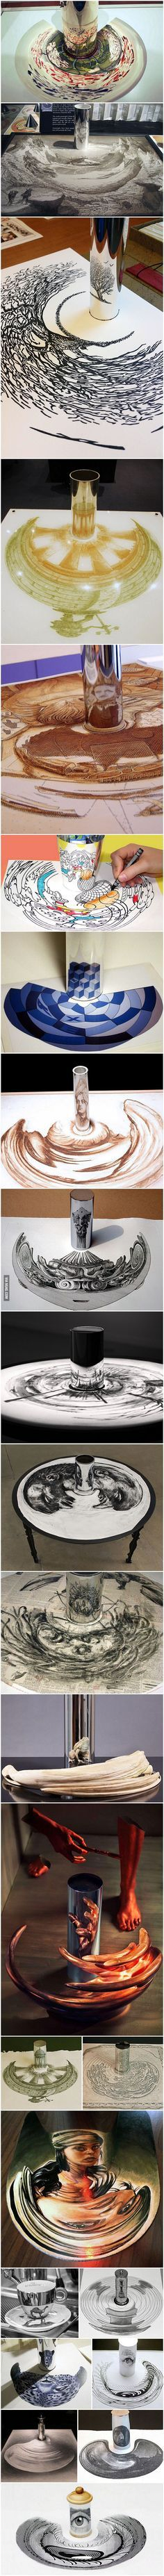 Anamorphic Artworks That Can Only Be Seen With A Cylinder